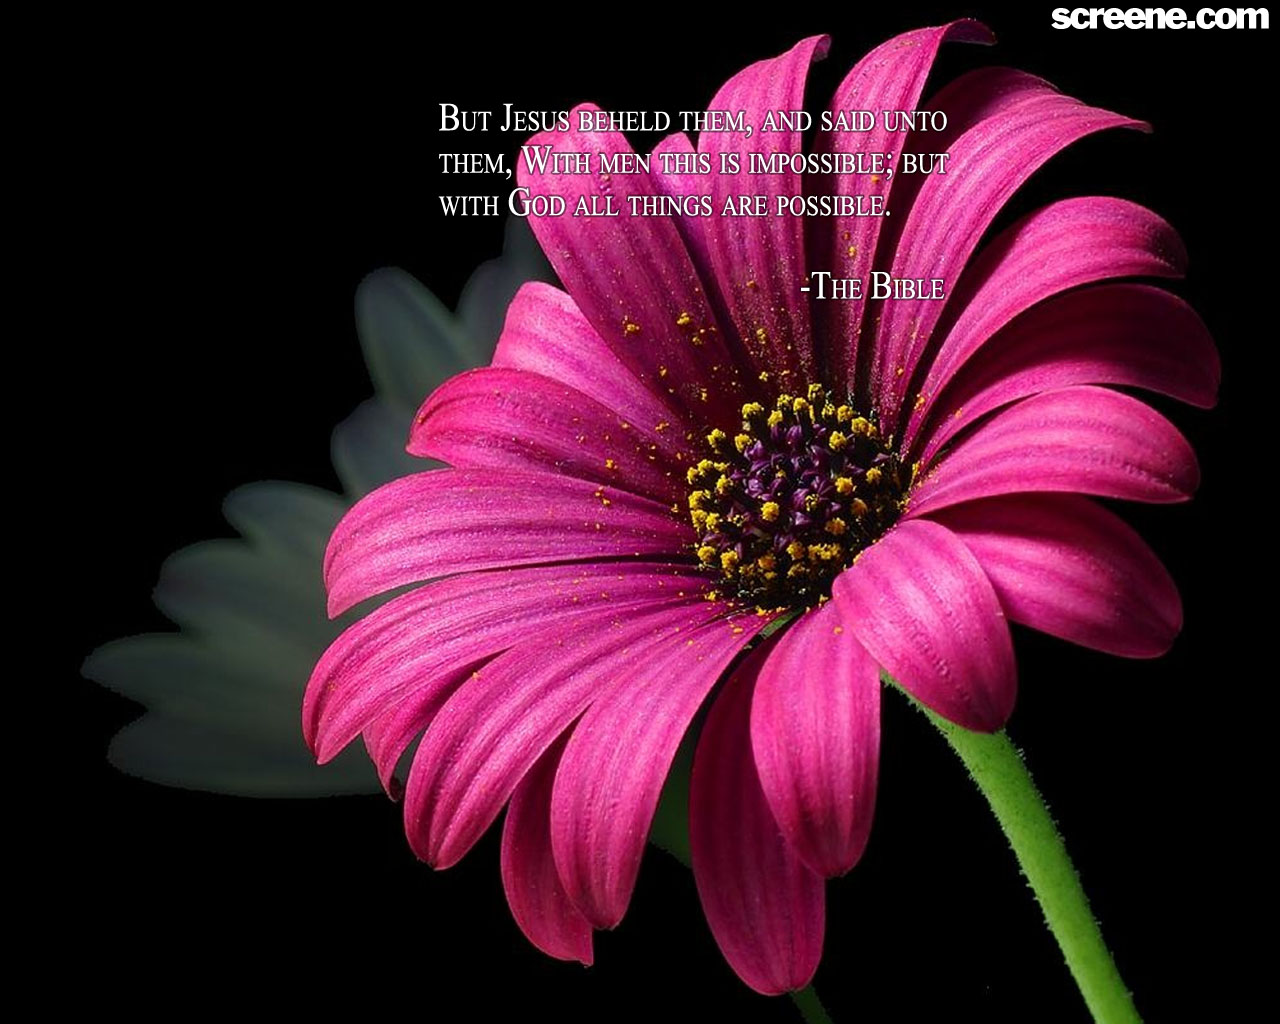 Flower wallpaper quotes 2 free hd wallpaper hdflowerwallpaper download convert view source tagged on flower wallpaper quotes free voltagebd Image collections